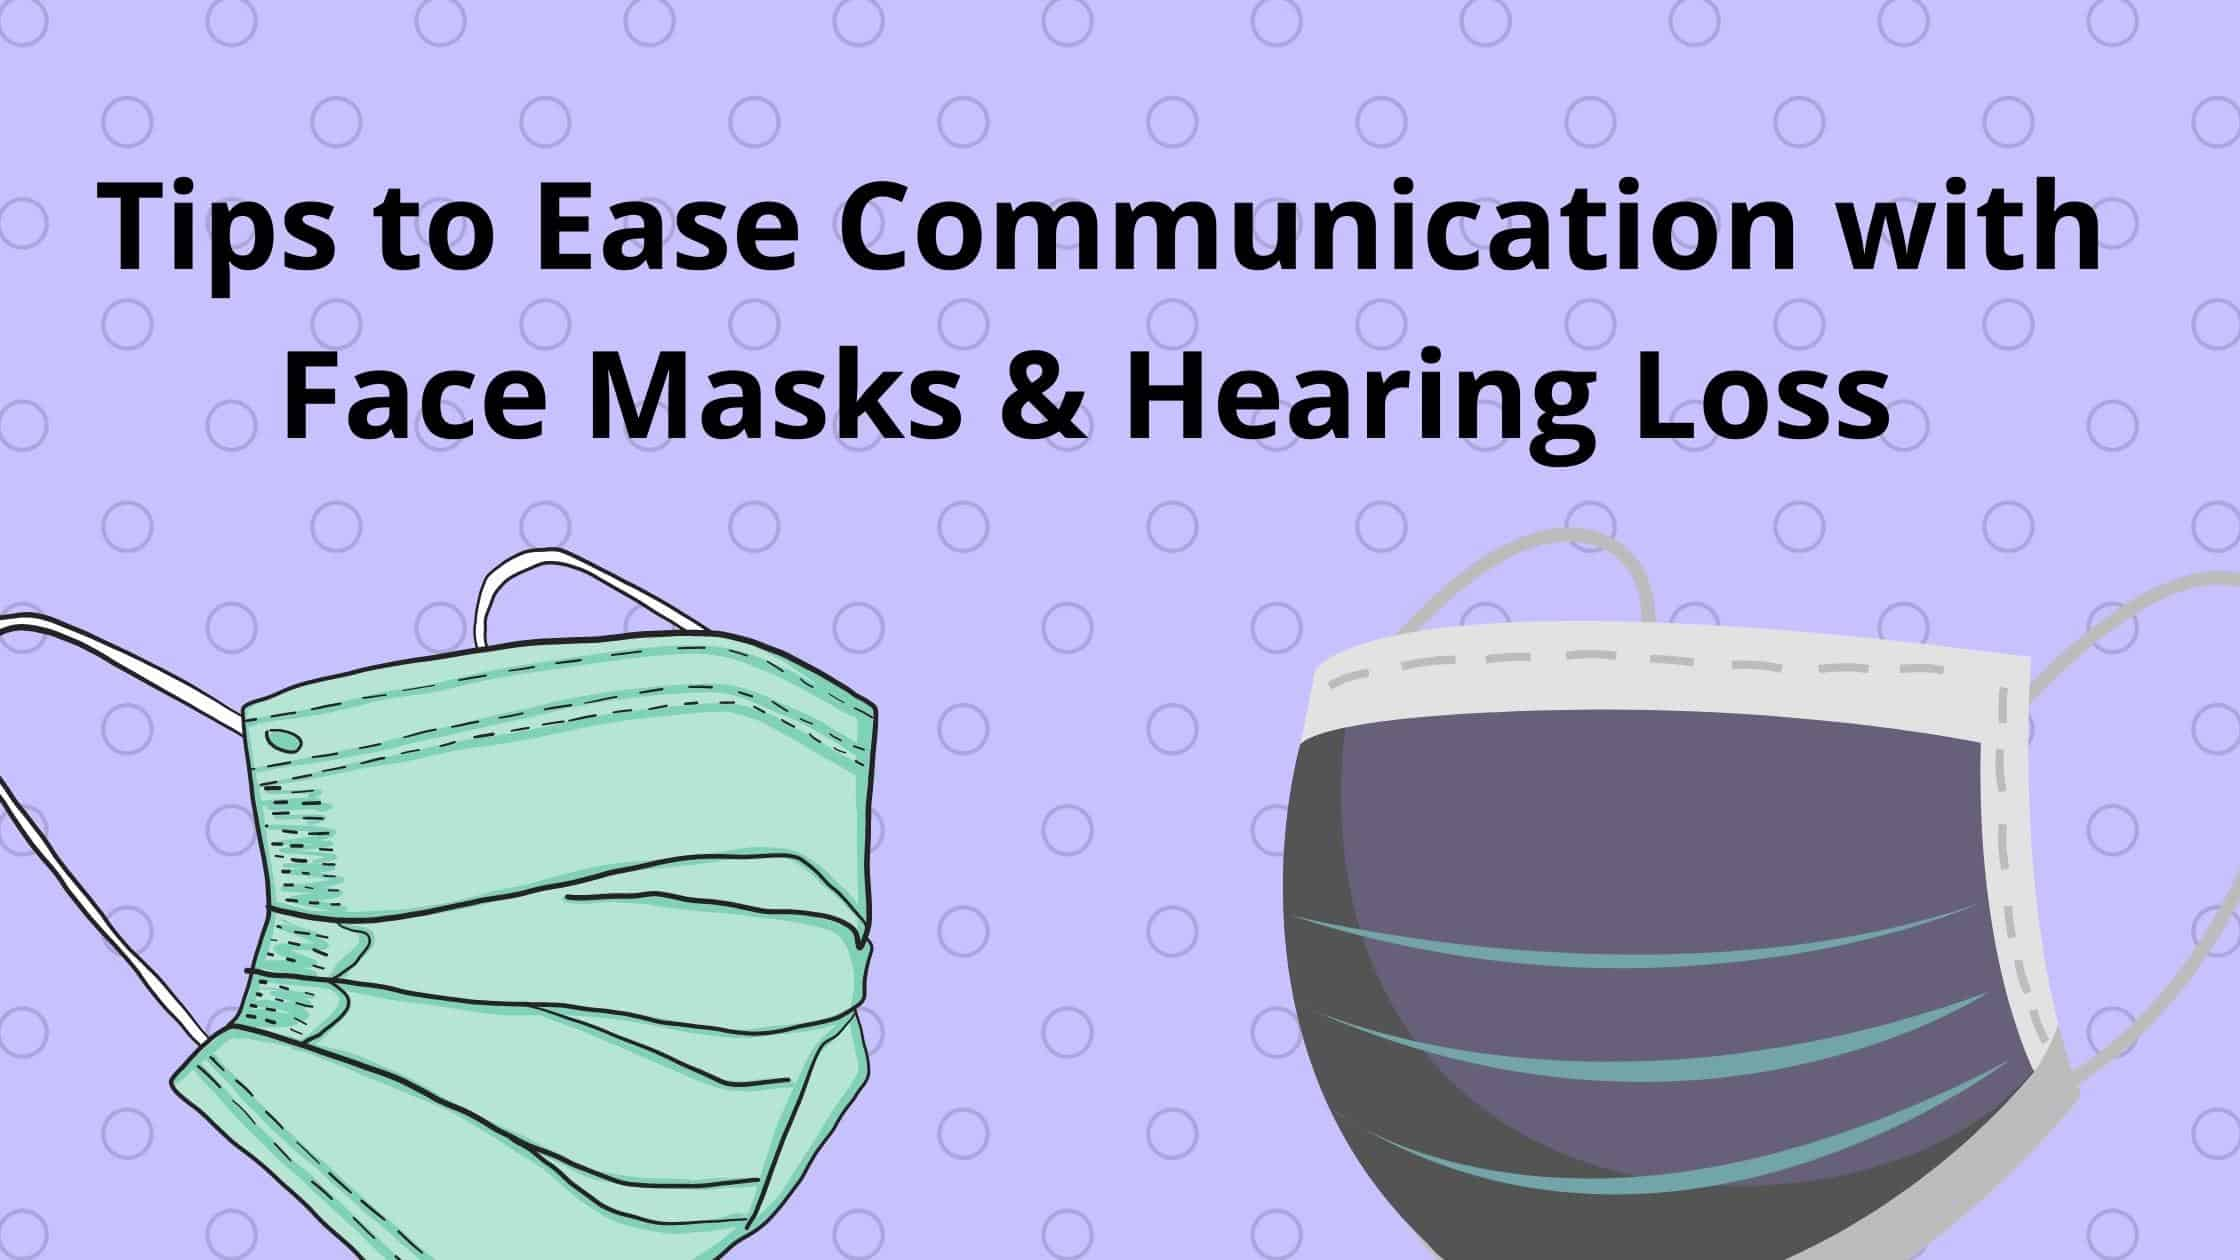 Tips to Ease Communication with Face Masks & Hearing Loss